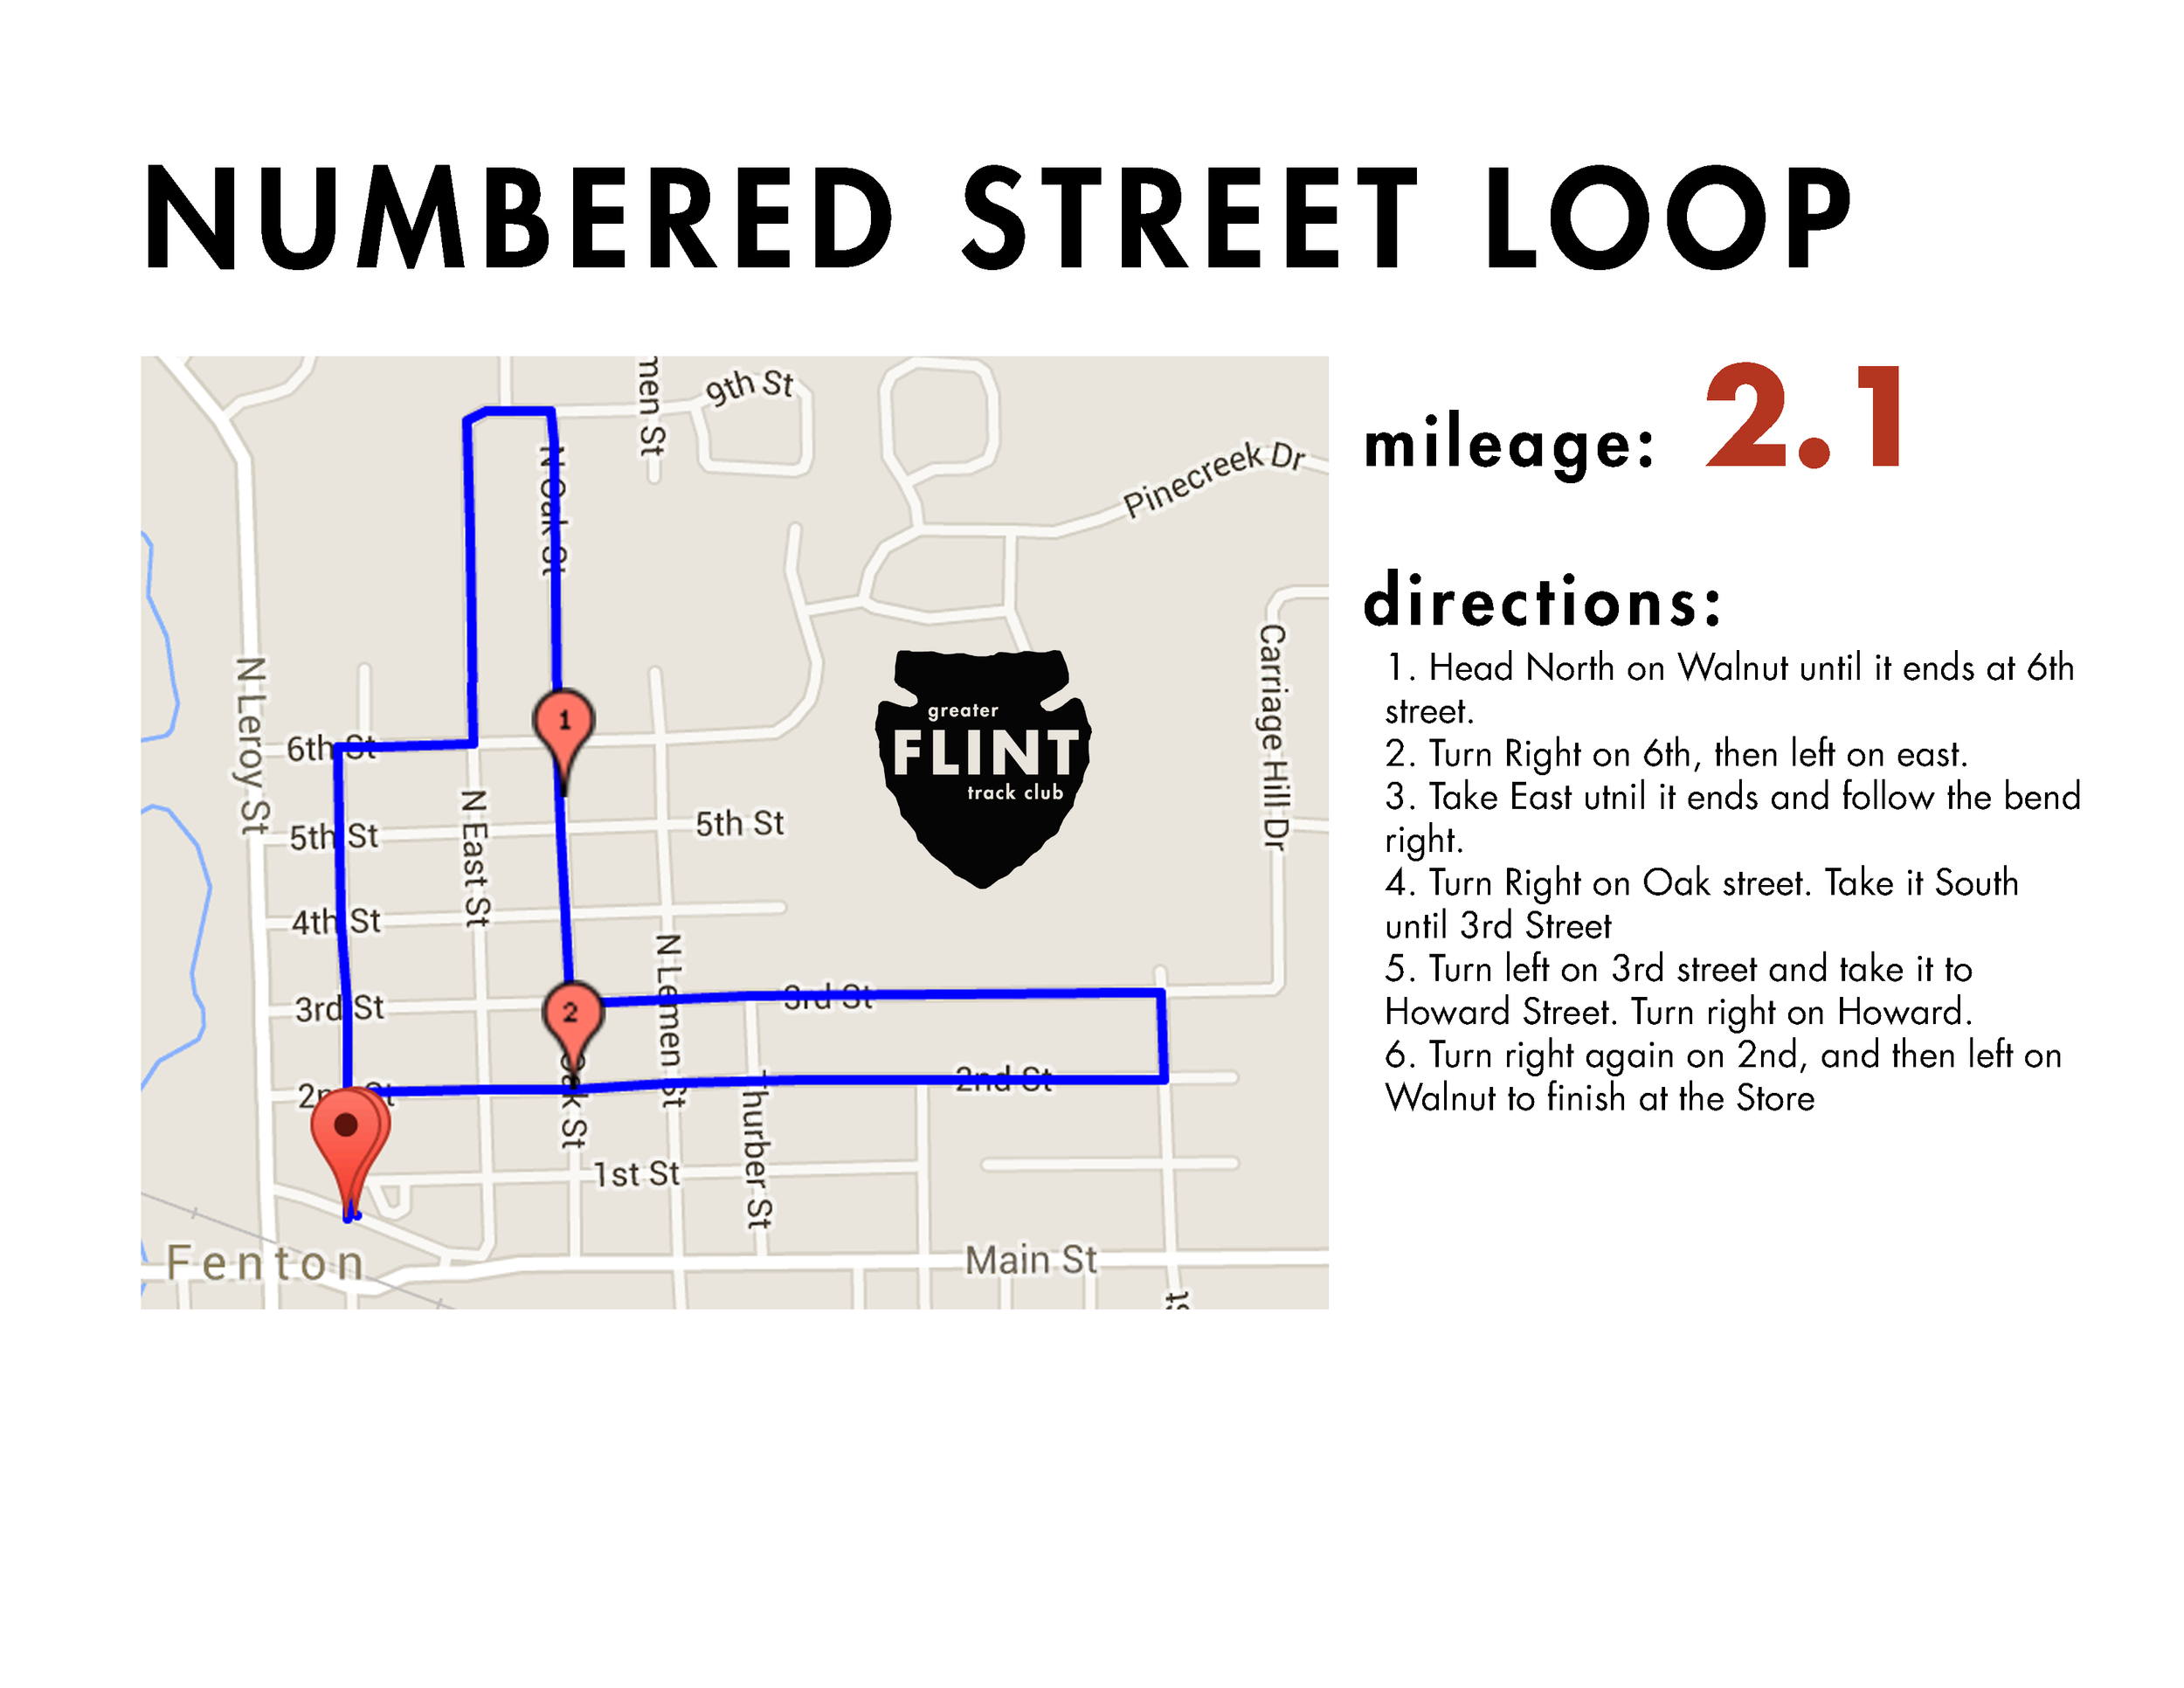 all pavement - good, short loop with easy ability to add or subtract distance, mostly follows right-away in a low-traffic residential area. there are potholes galore though (welcome to michigan), so watch your ankles.